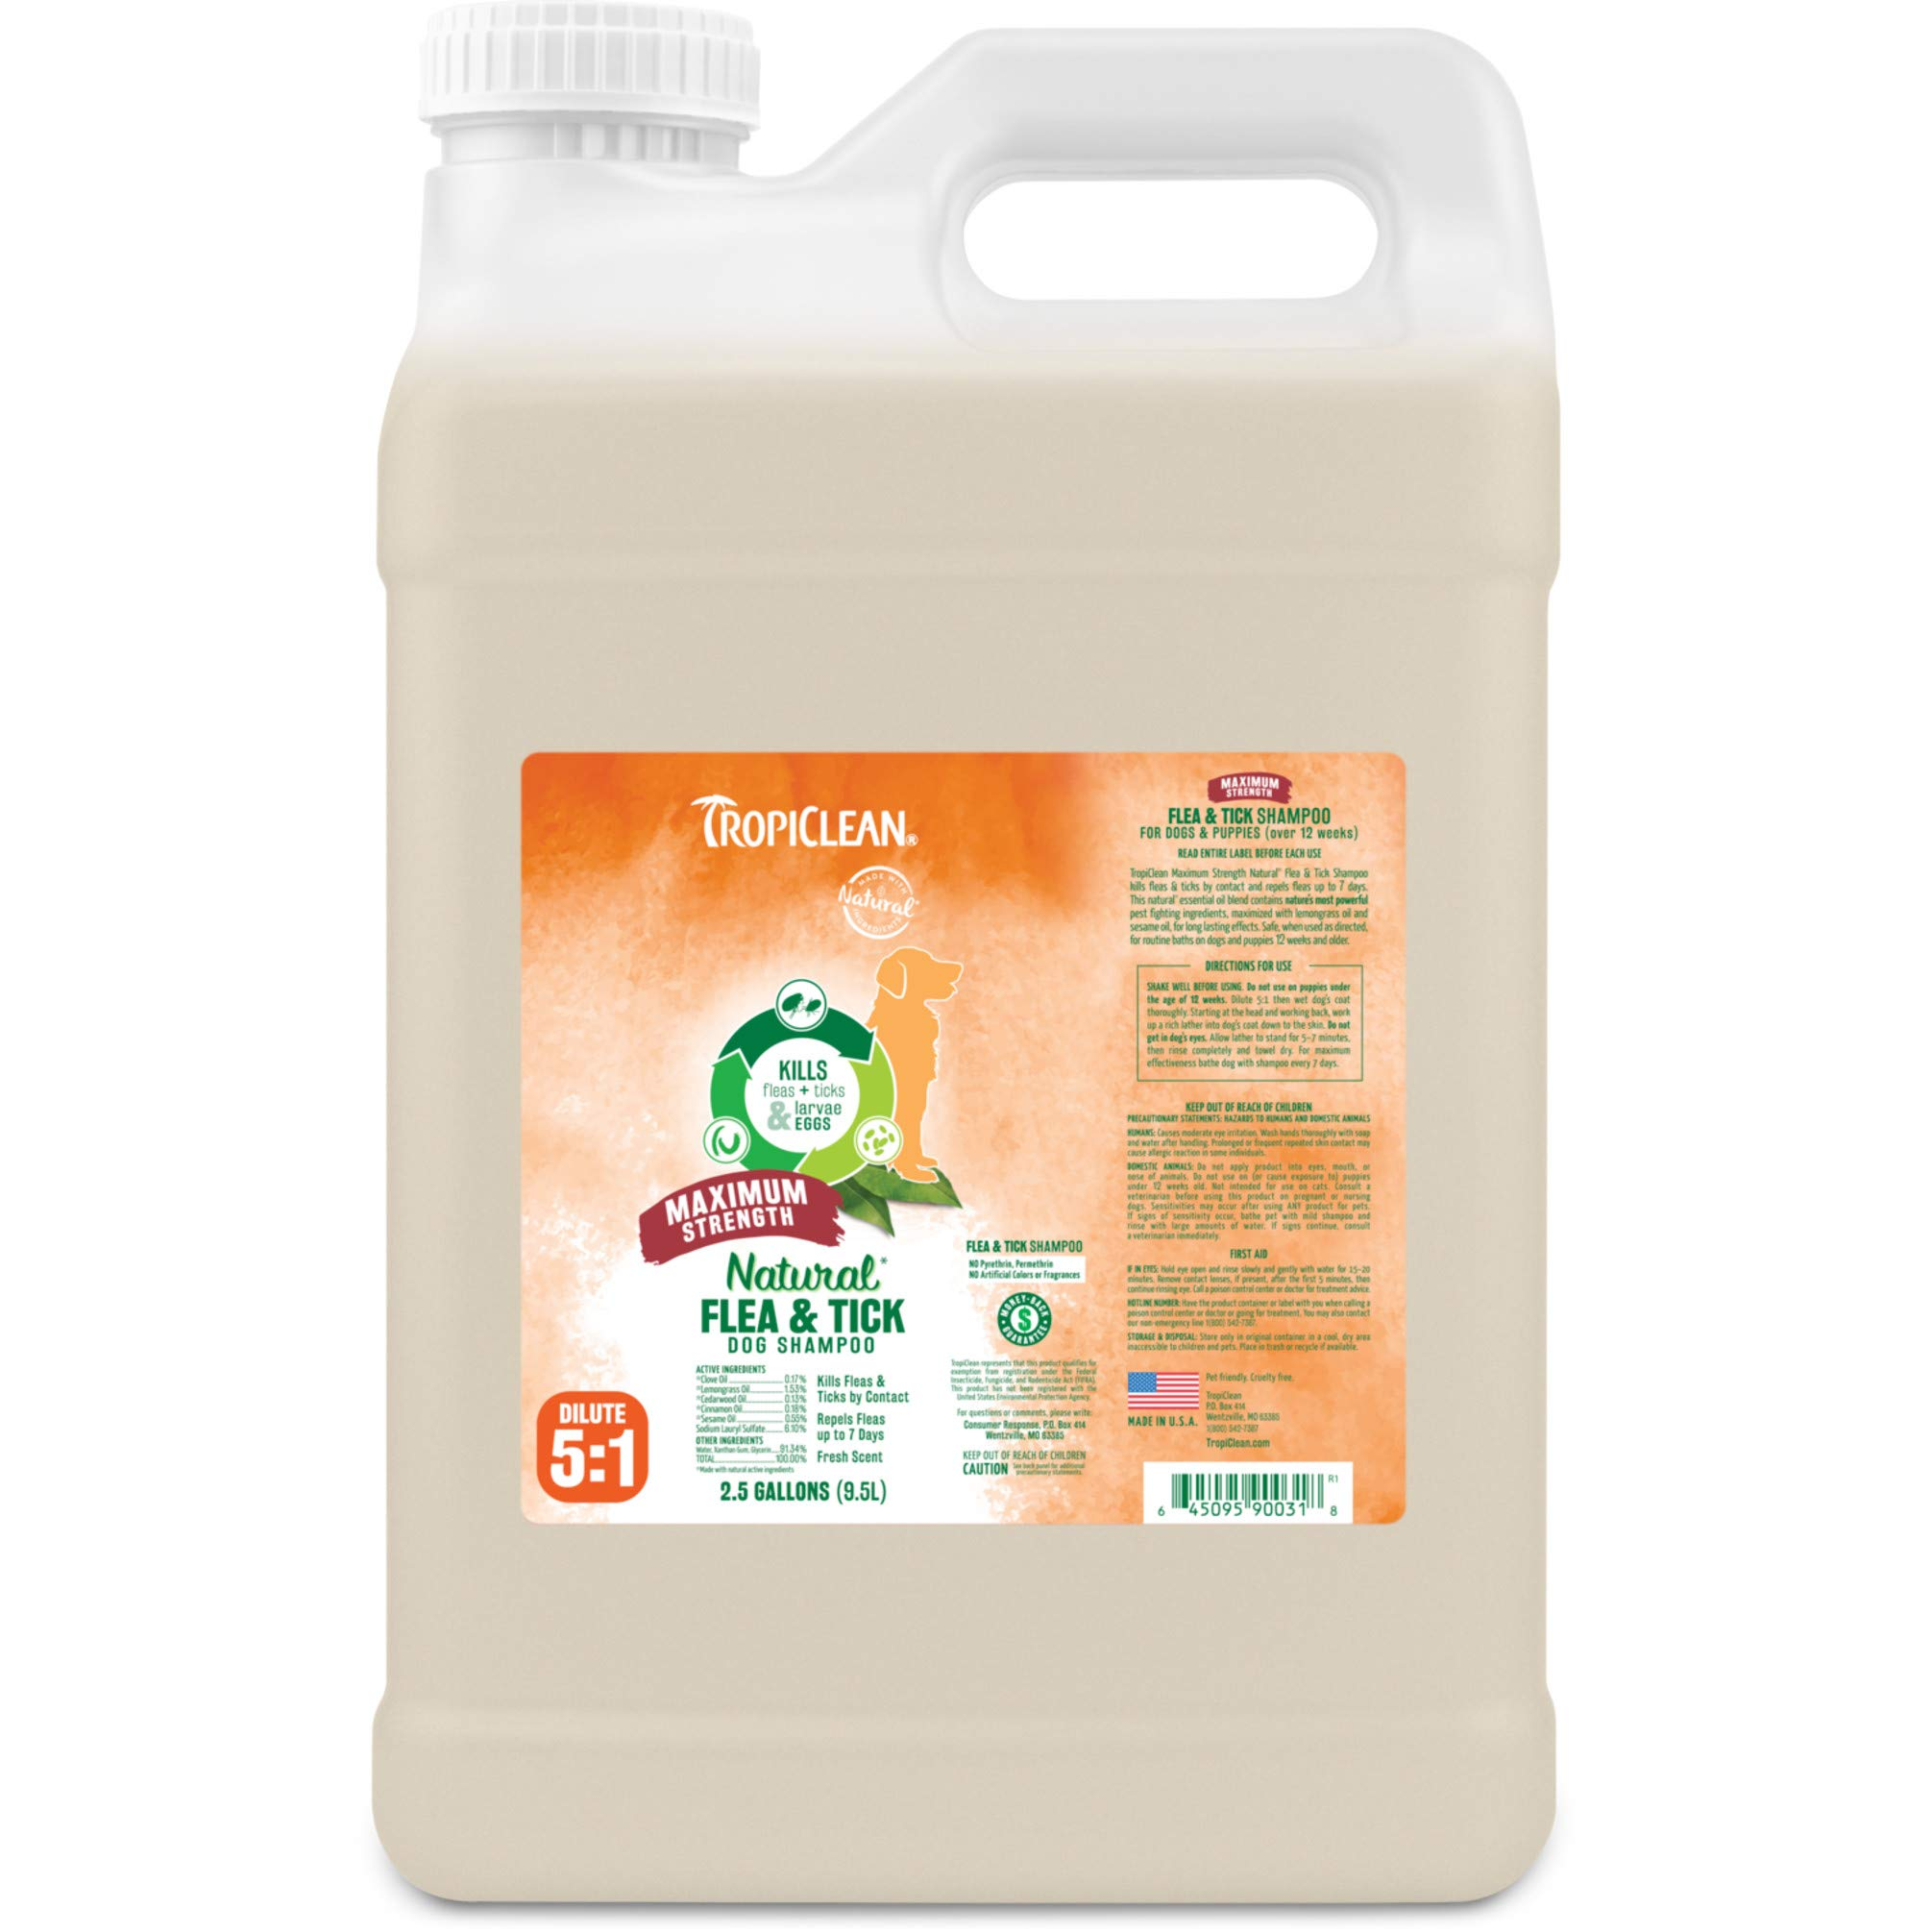 TropiClean Flea and Tick Maximum Strength Shampoo for Dogs, 2.5 gal, Made in USA by TropiClean